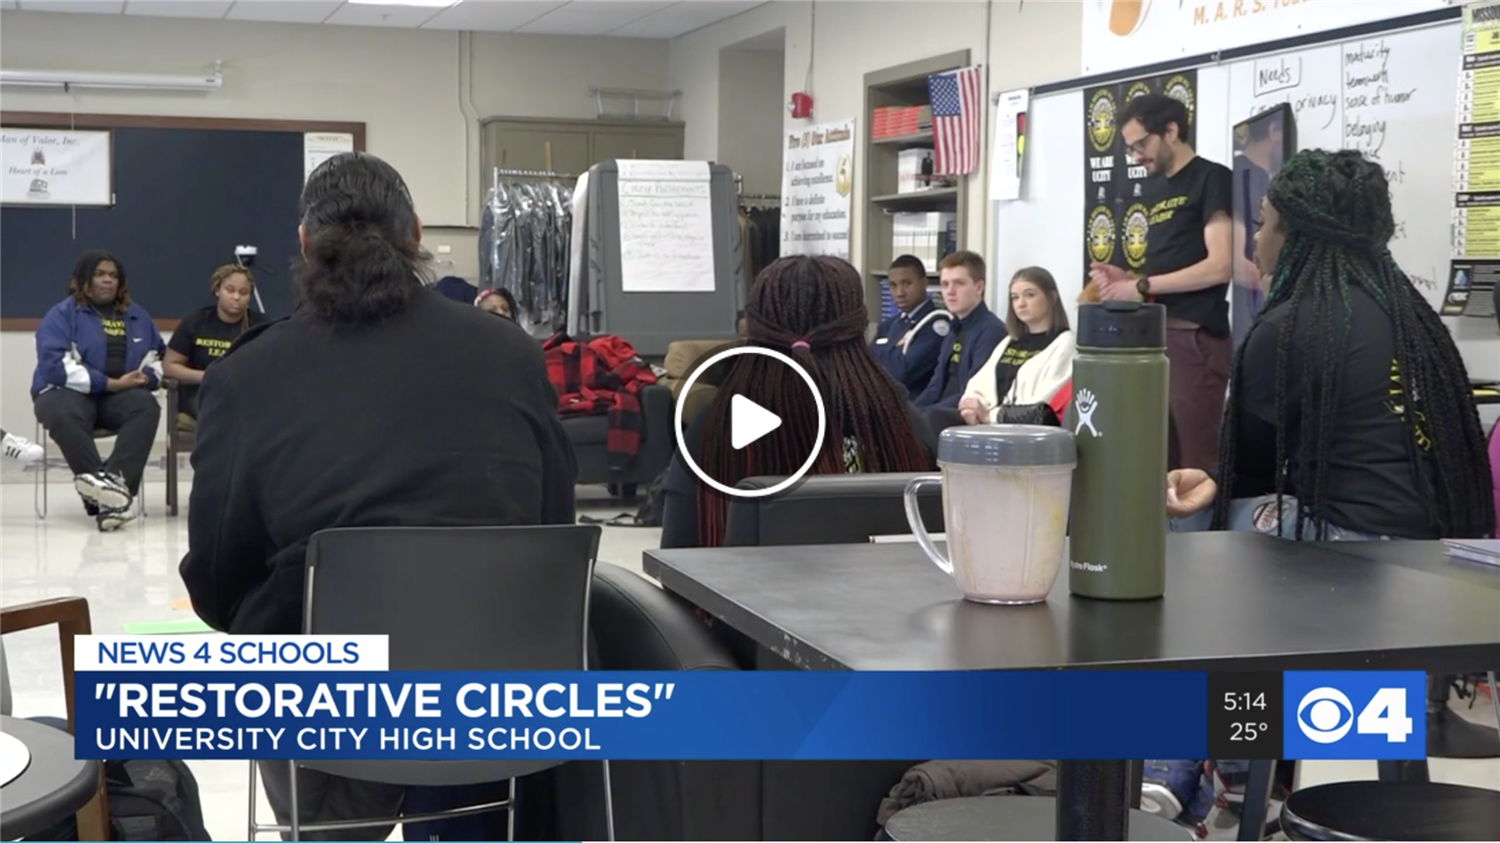 UCHS Uses New Tool to Resolve Conflicts KMOV 4